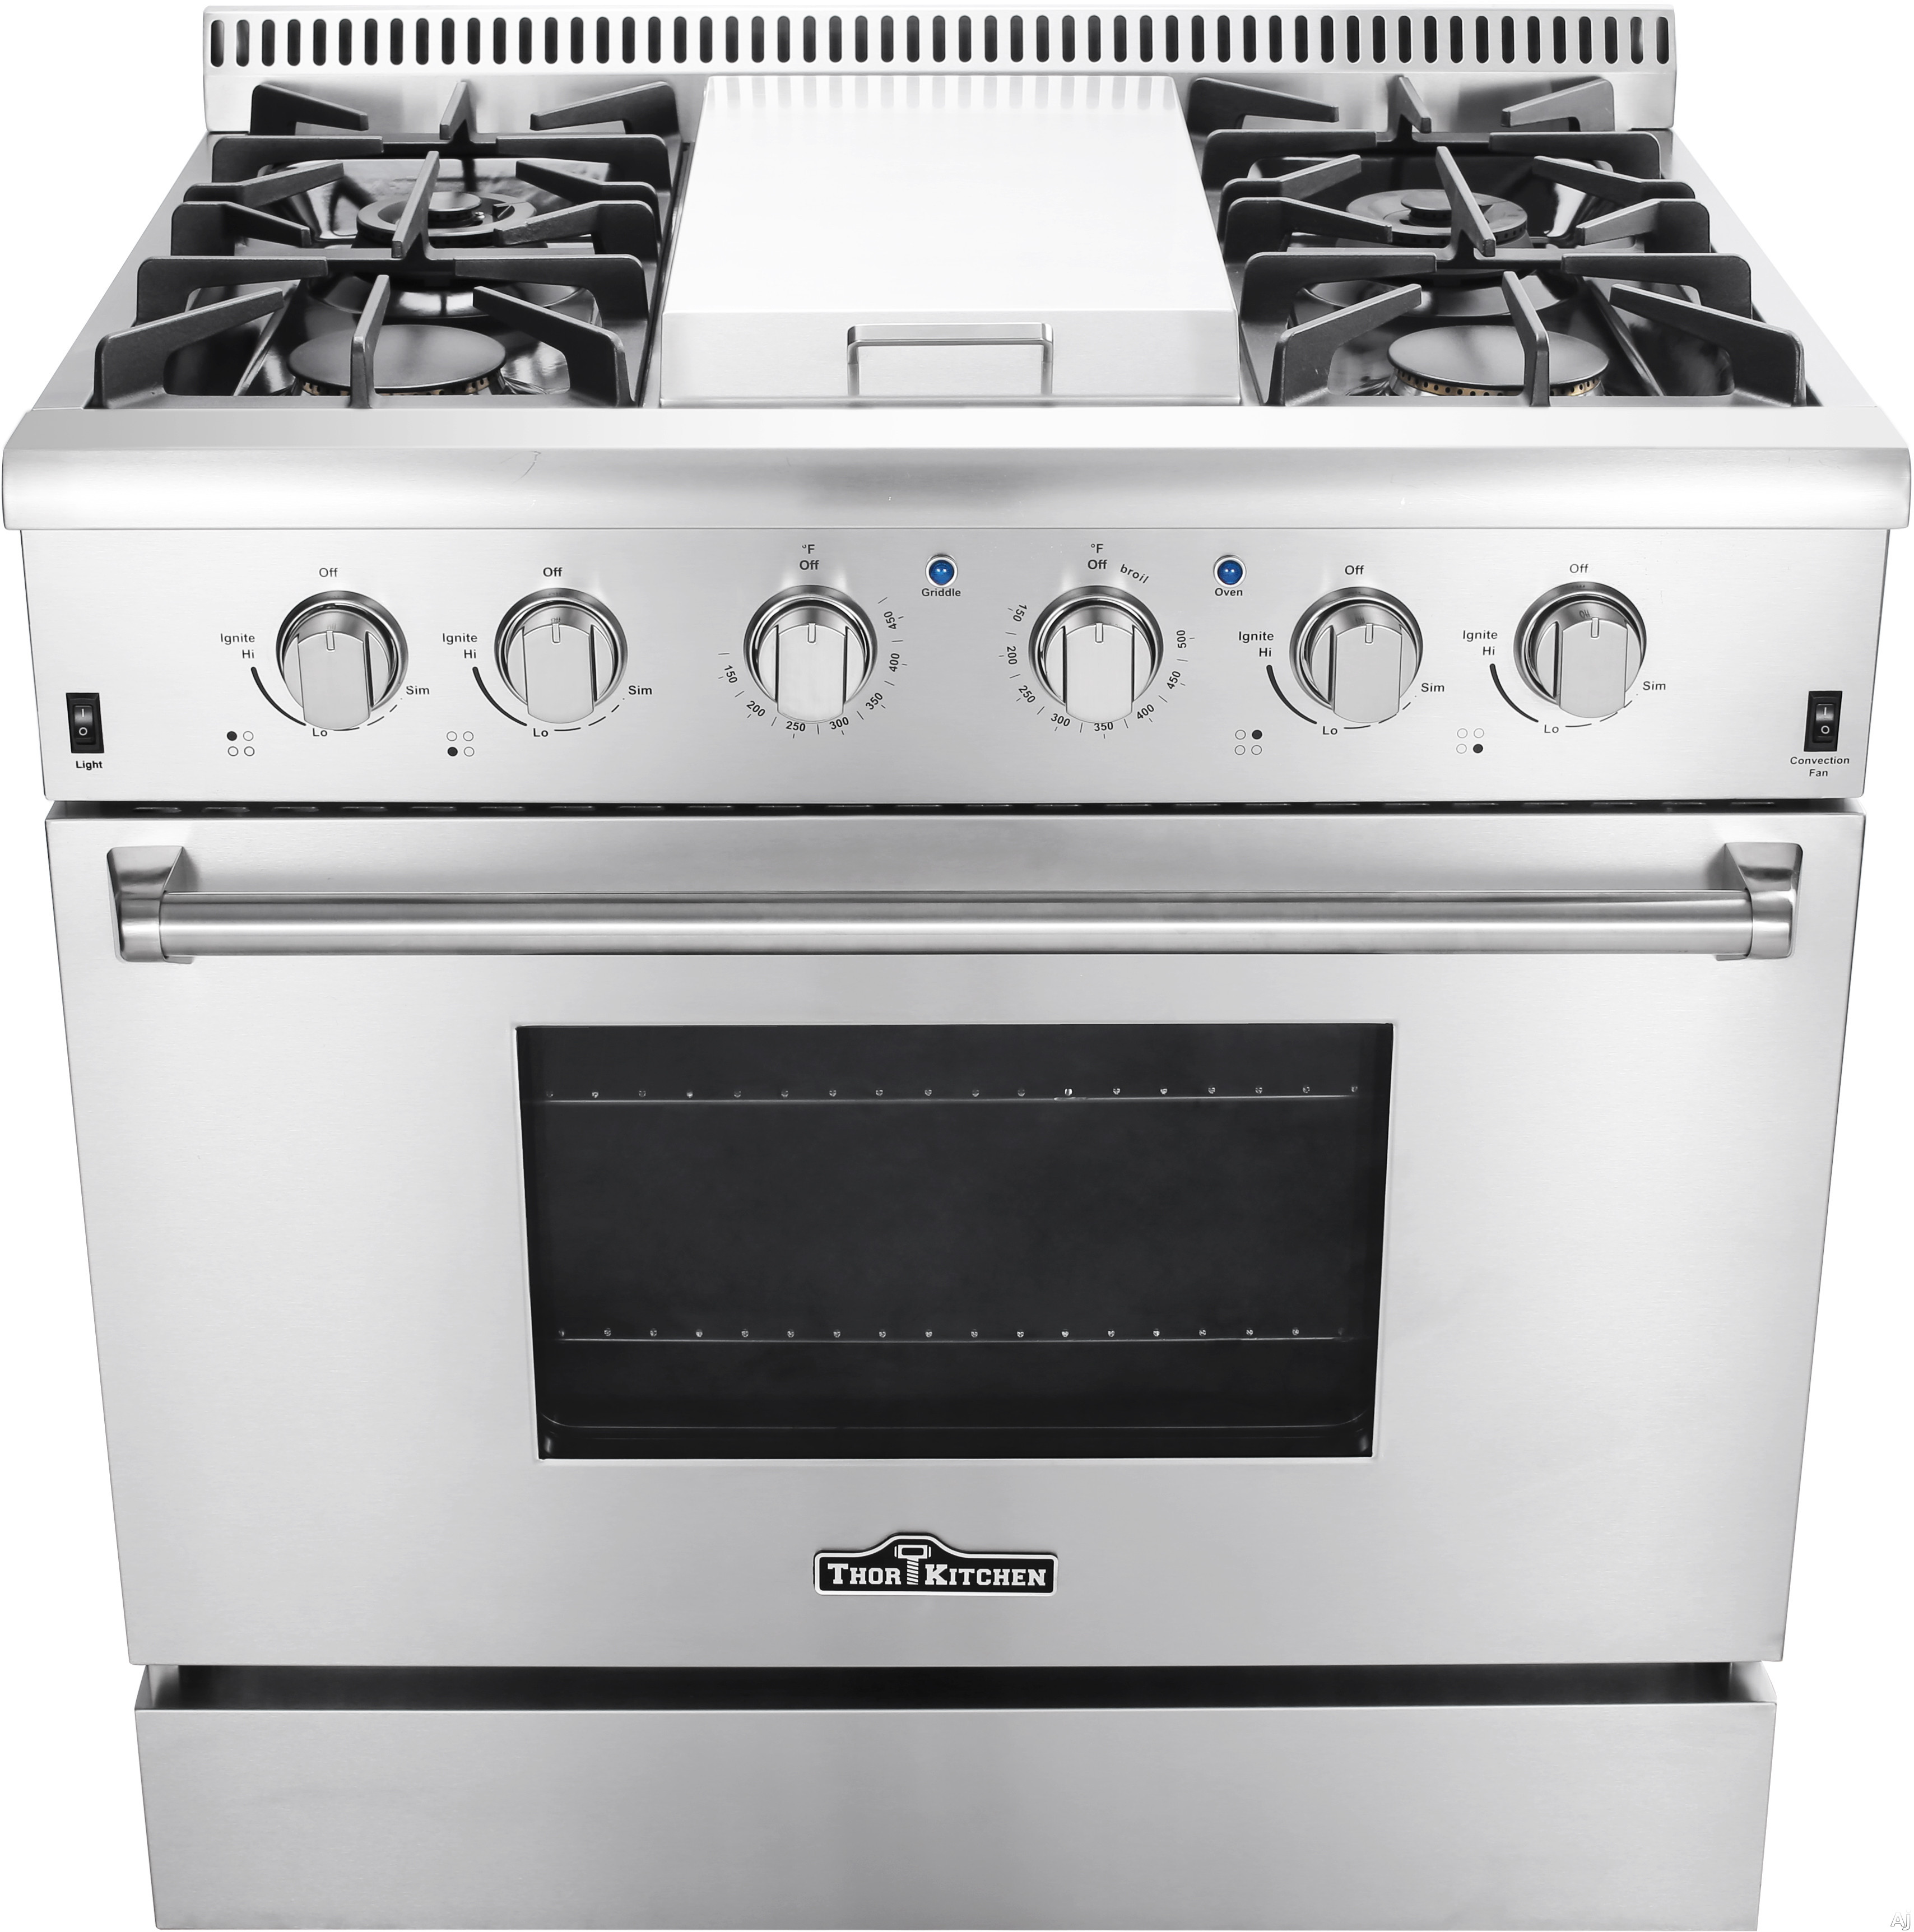 Thor Kitchen HRG3617U 36 Inch Freestanding Gas Range with Convection, Griddle, Infrared Broil Burner, Dual Burner, 4 Sealed Burners, Continuous Grates, Automatic Re-Ignition, Porcelain Drip Pan 5.2 cu